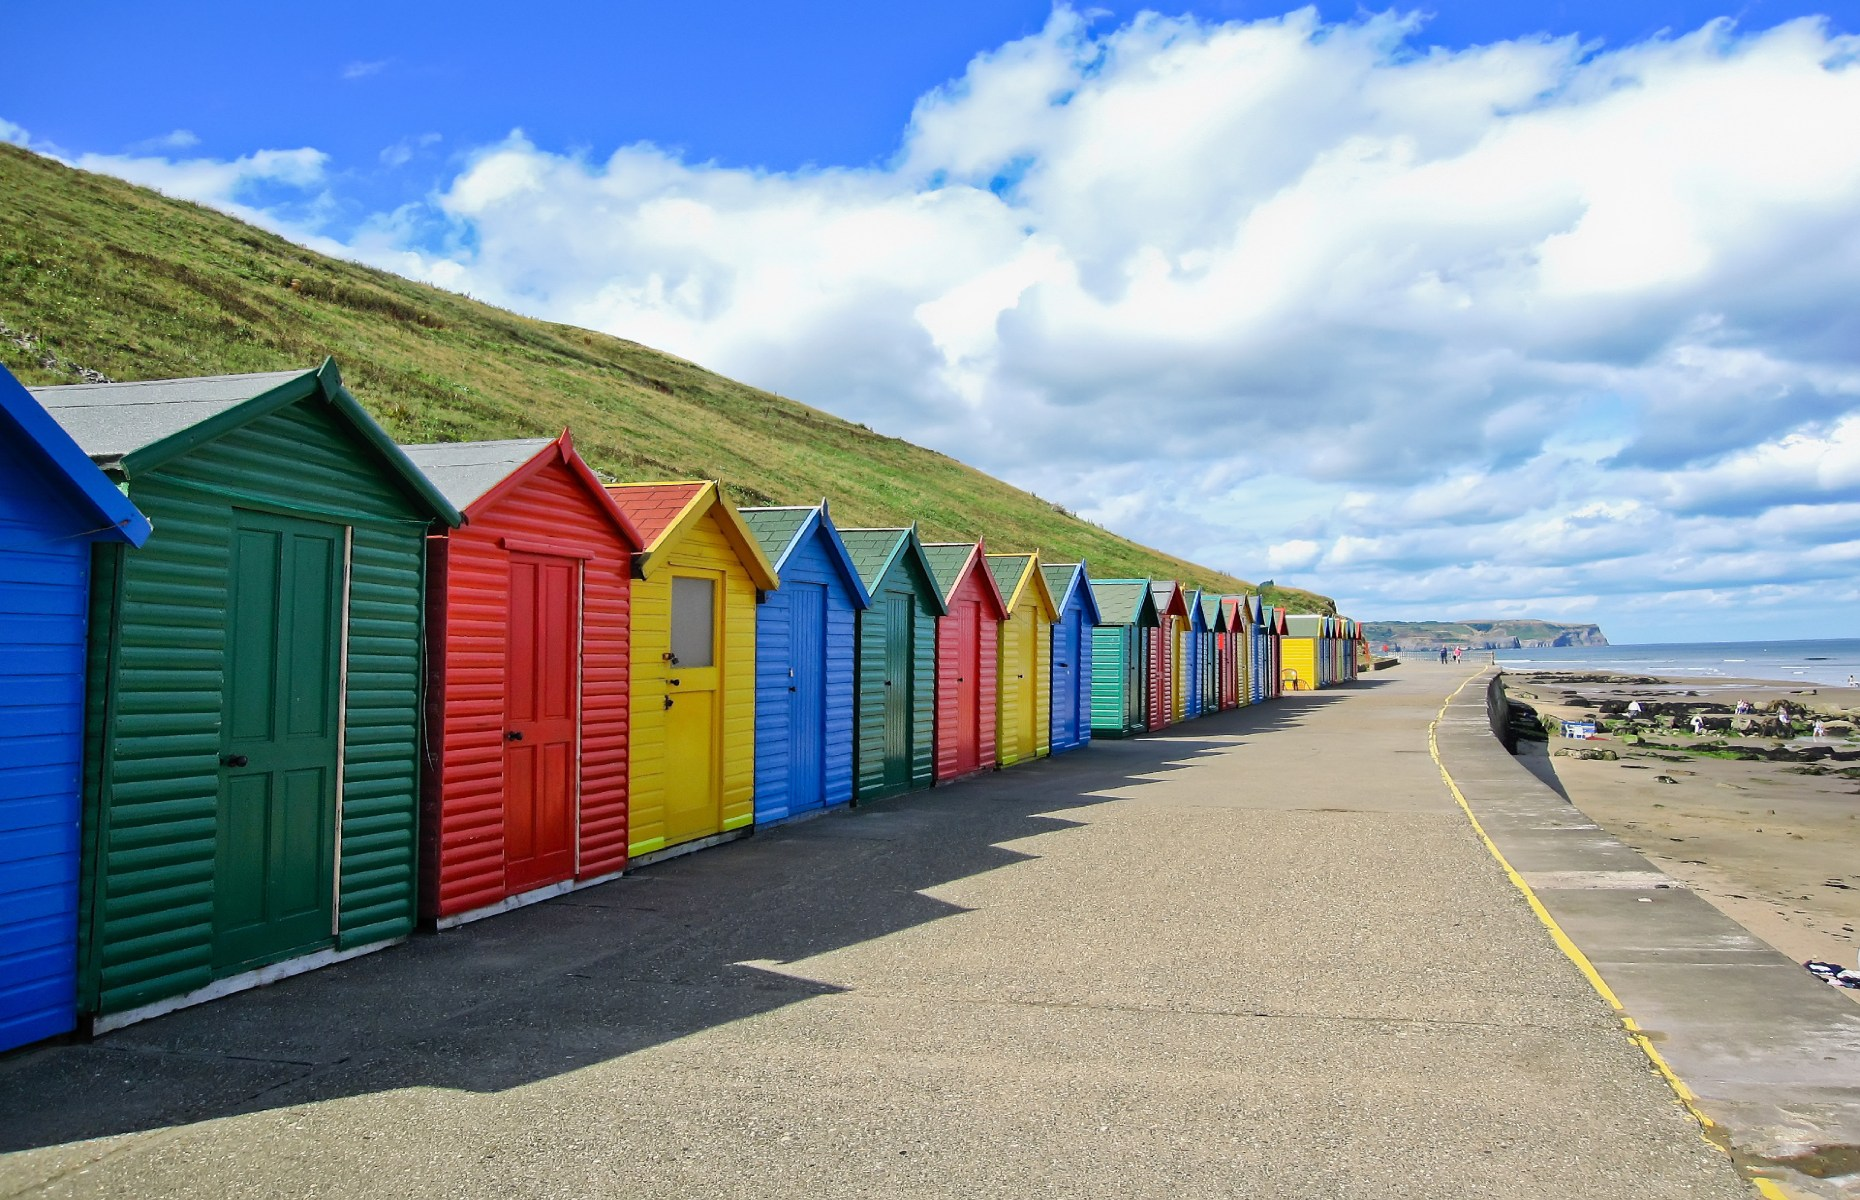 Beach huts on Whitby Sands (Image: Javen/Shutterstock)